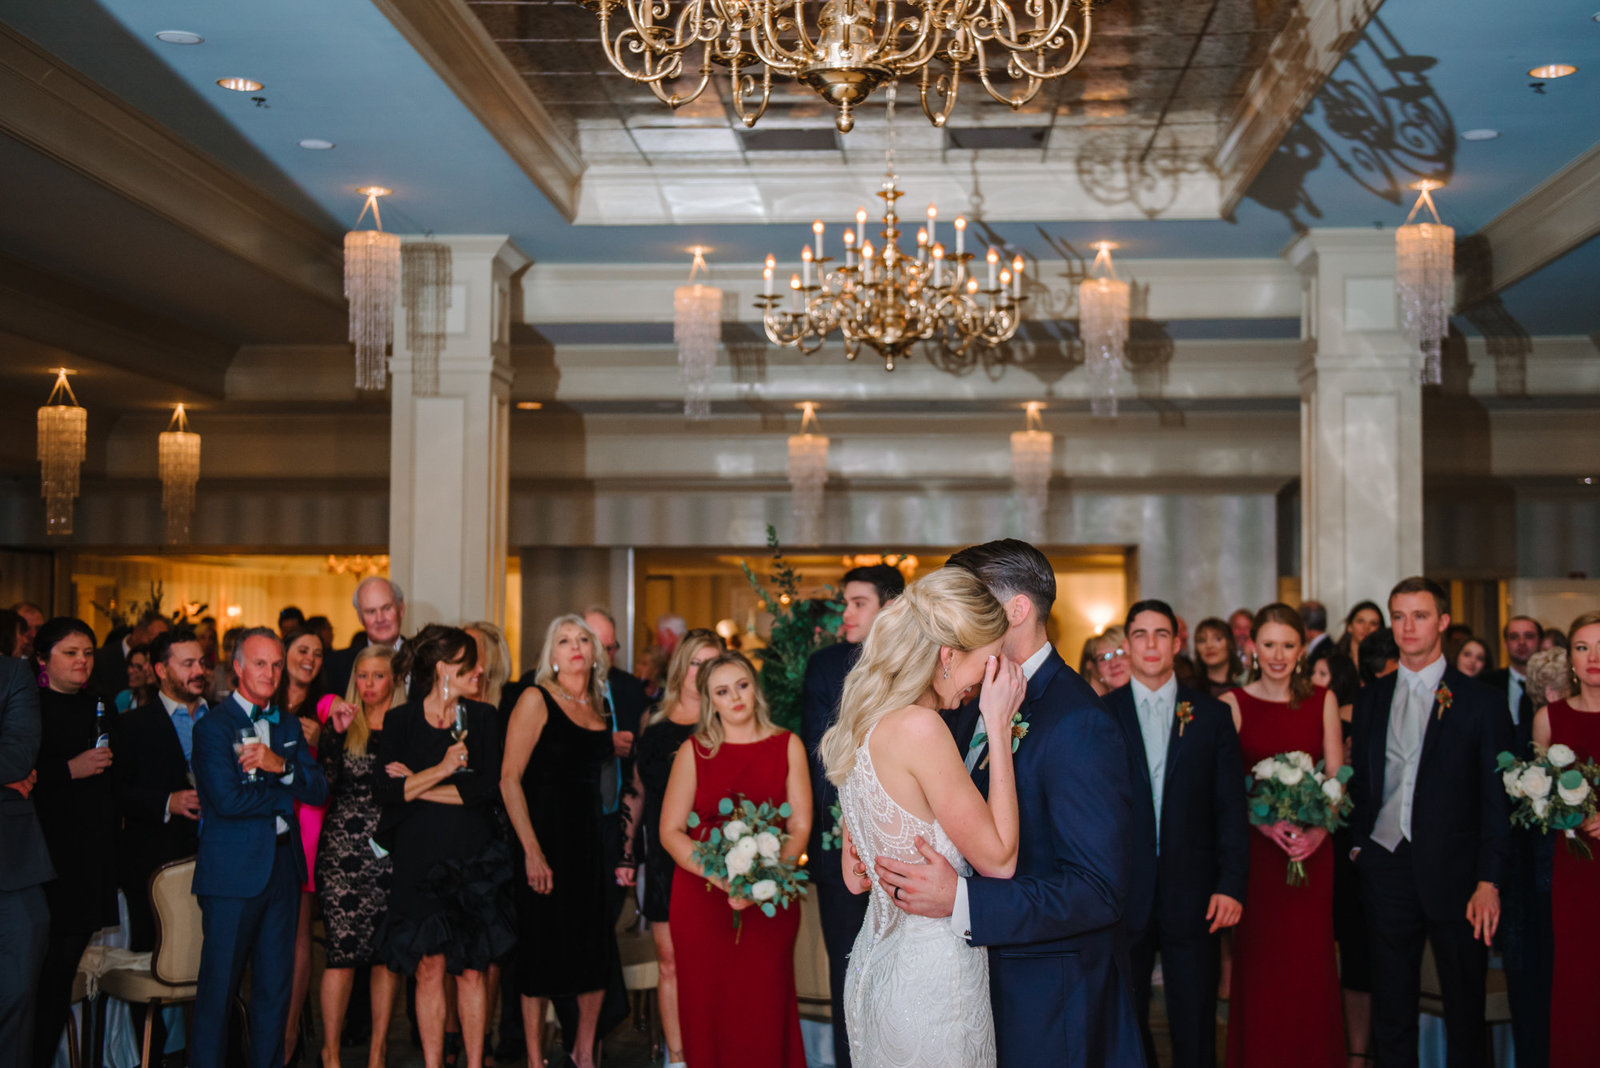 Wedding Photography in South Carolina by Myrtle Beach Wedding Photographer Pasha Belman-14